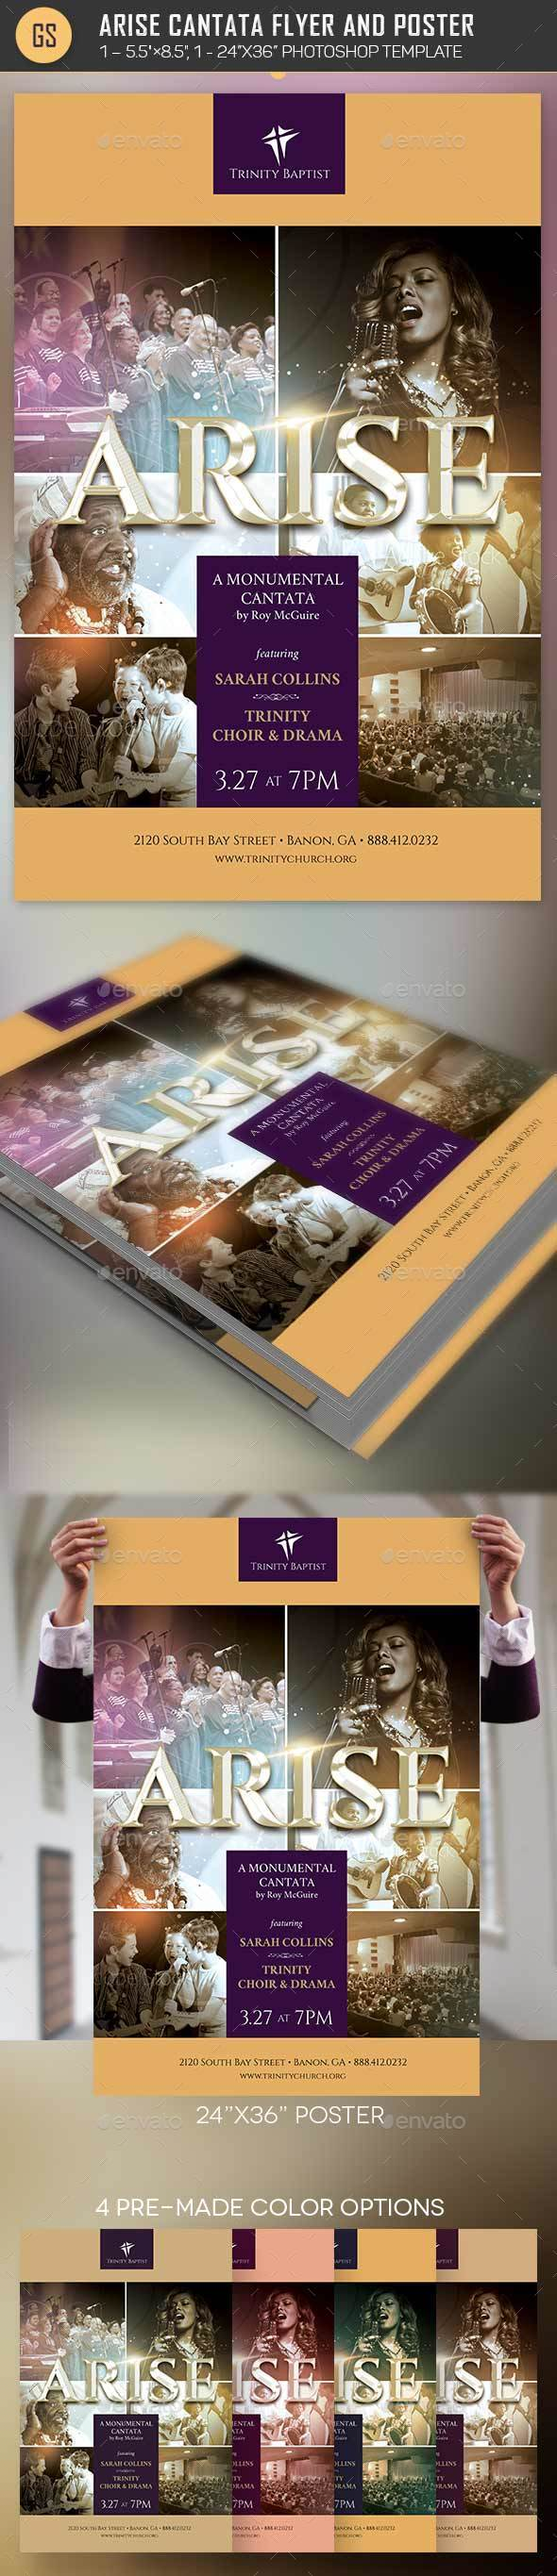 Arise Cantata Flyer Poster Template - Church Flyers